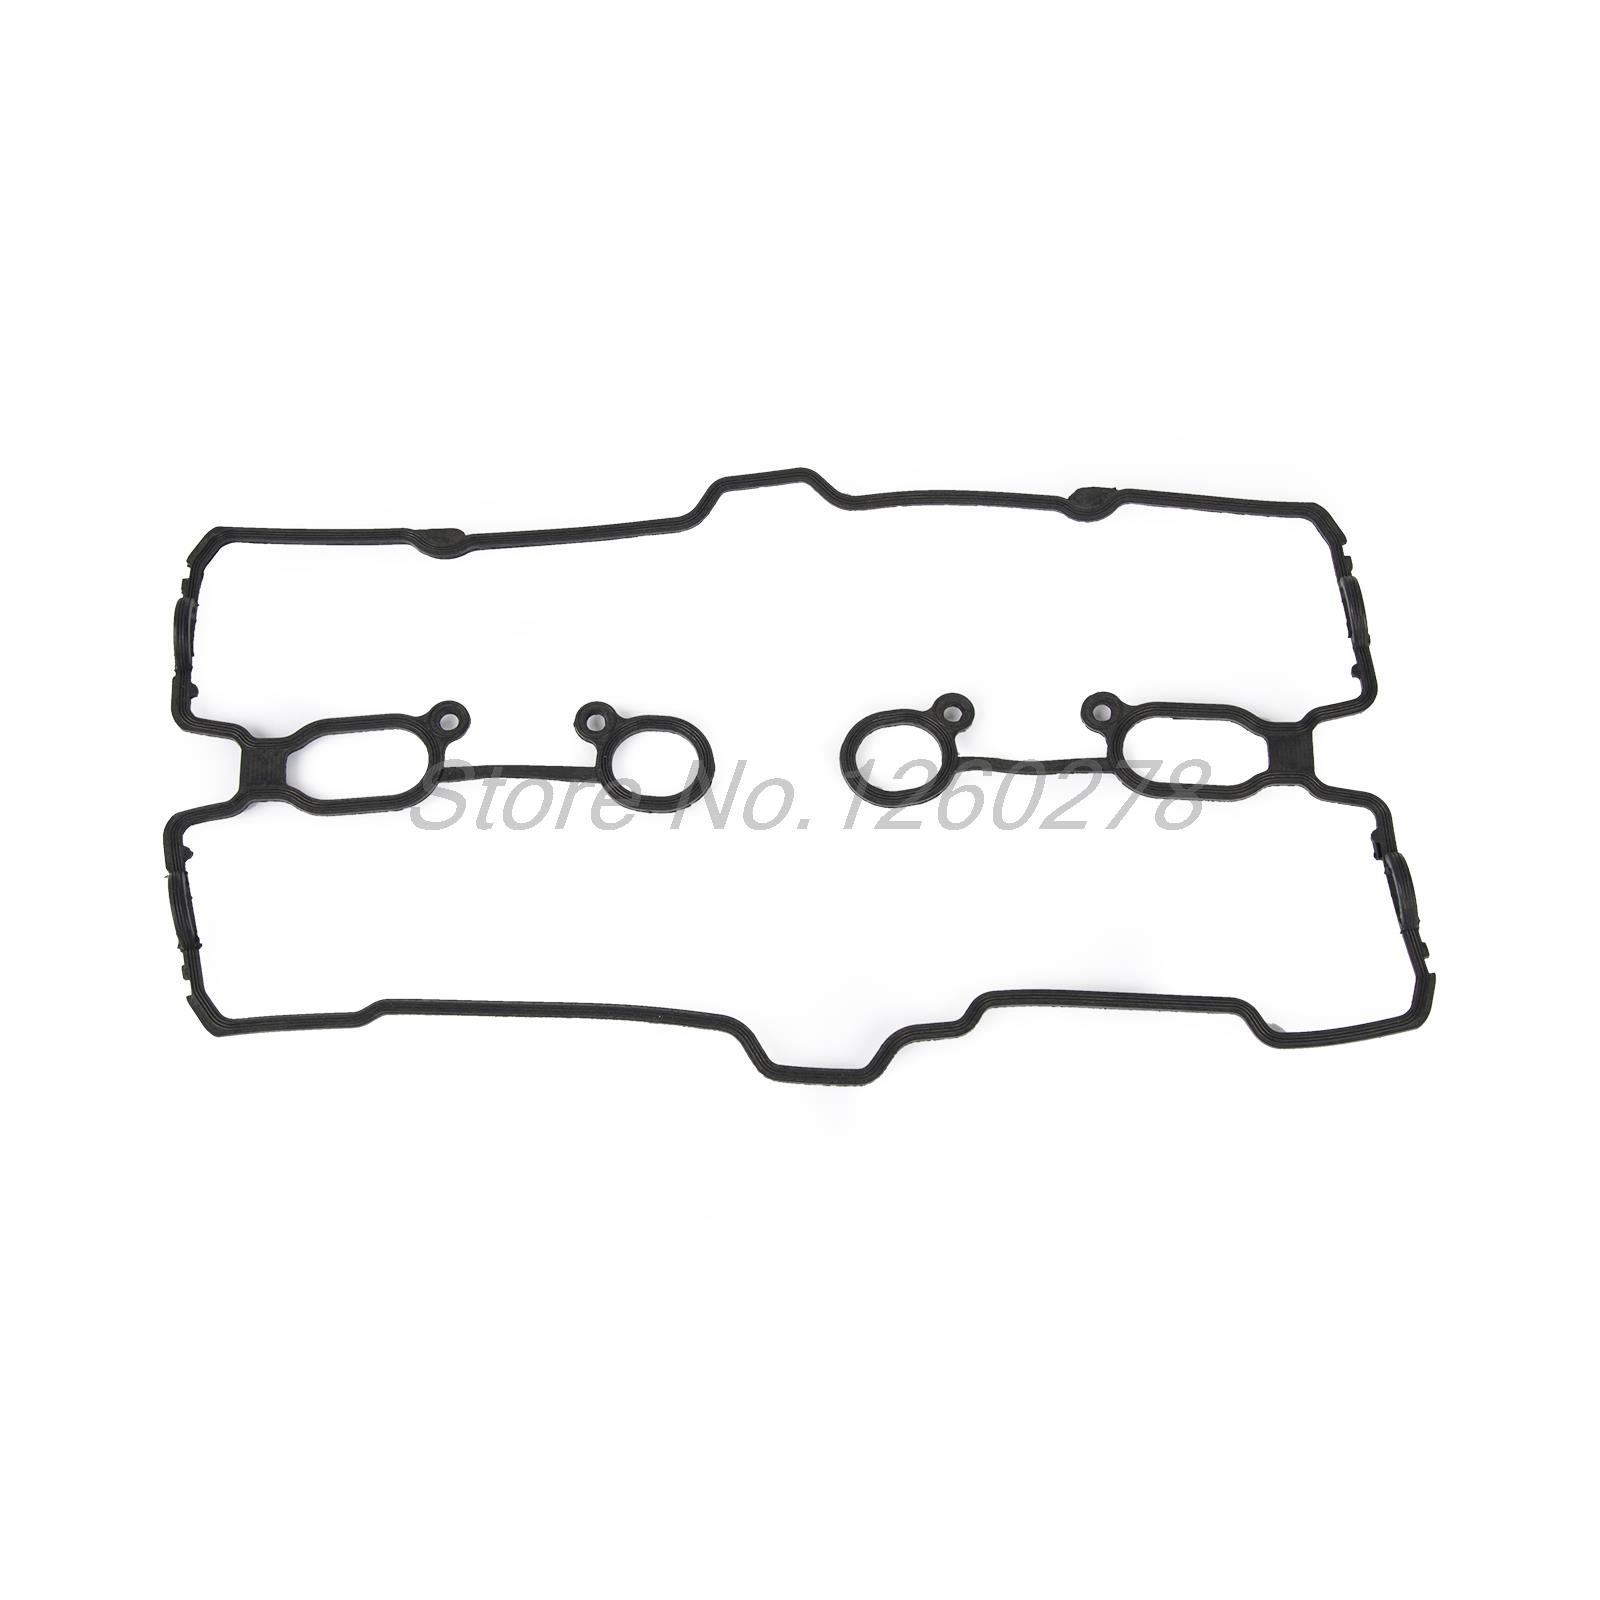 Cylinder Head Cover Gasket for Honda CB400SF VTEC NC39-in